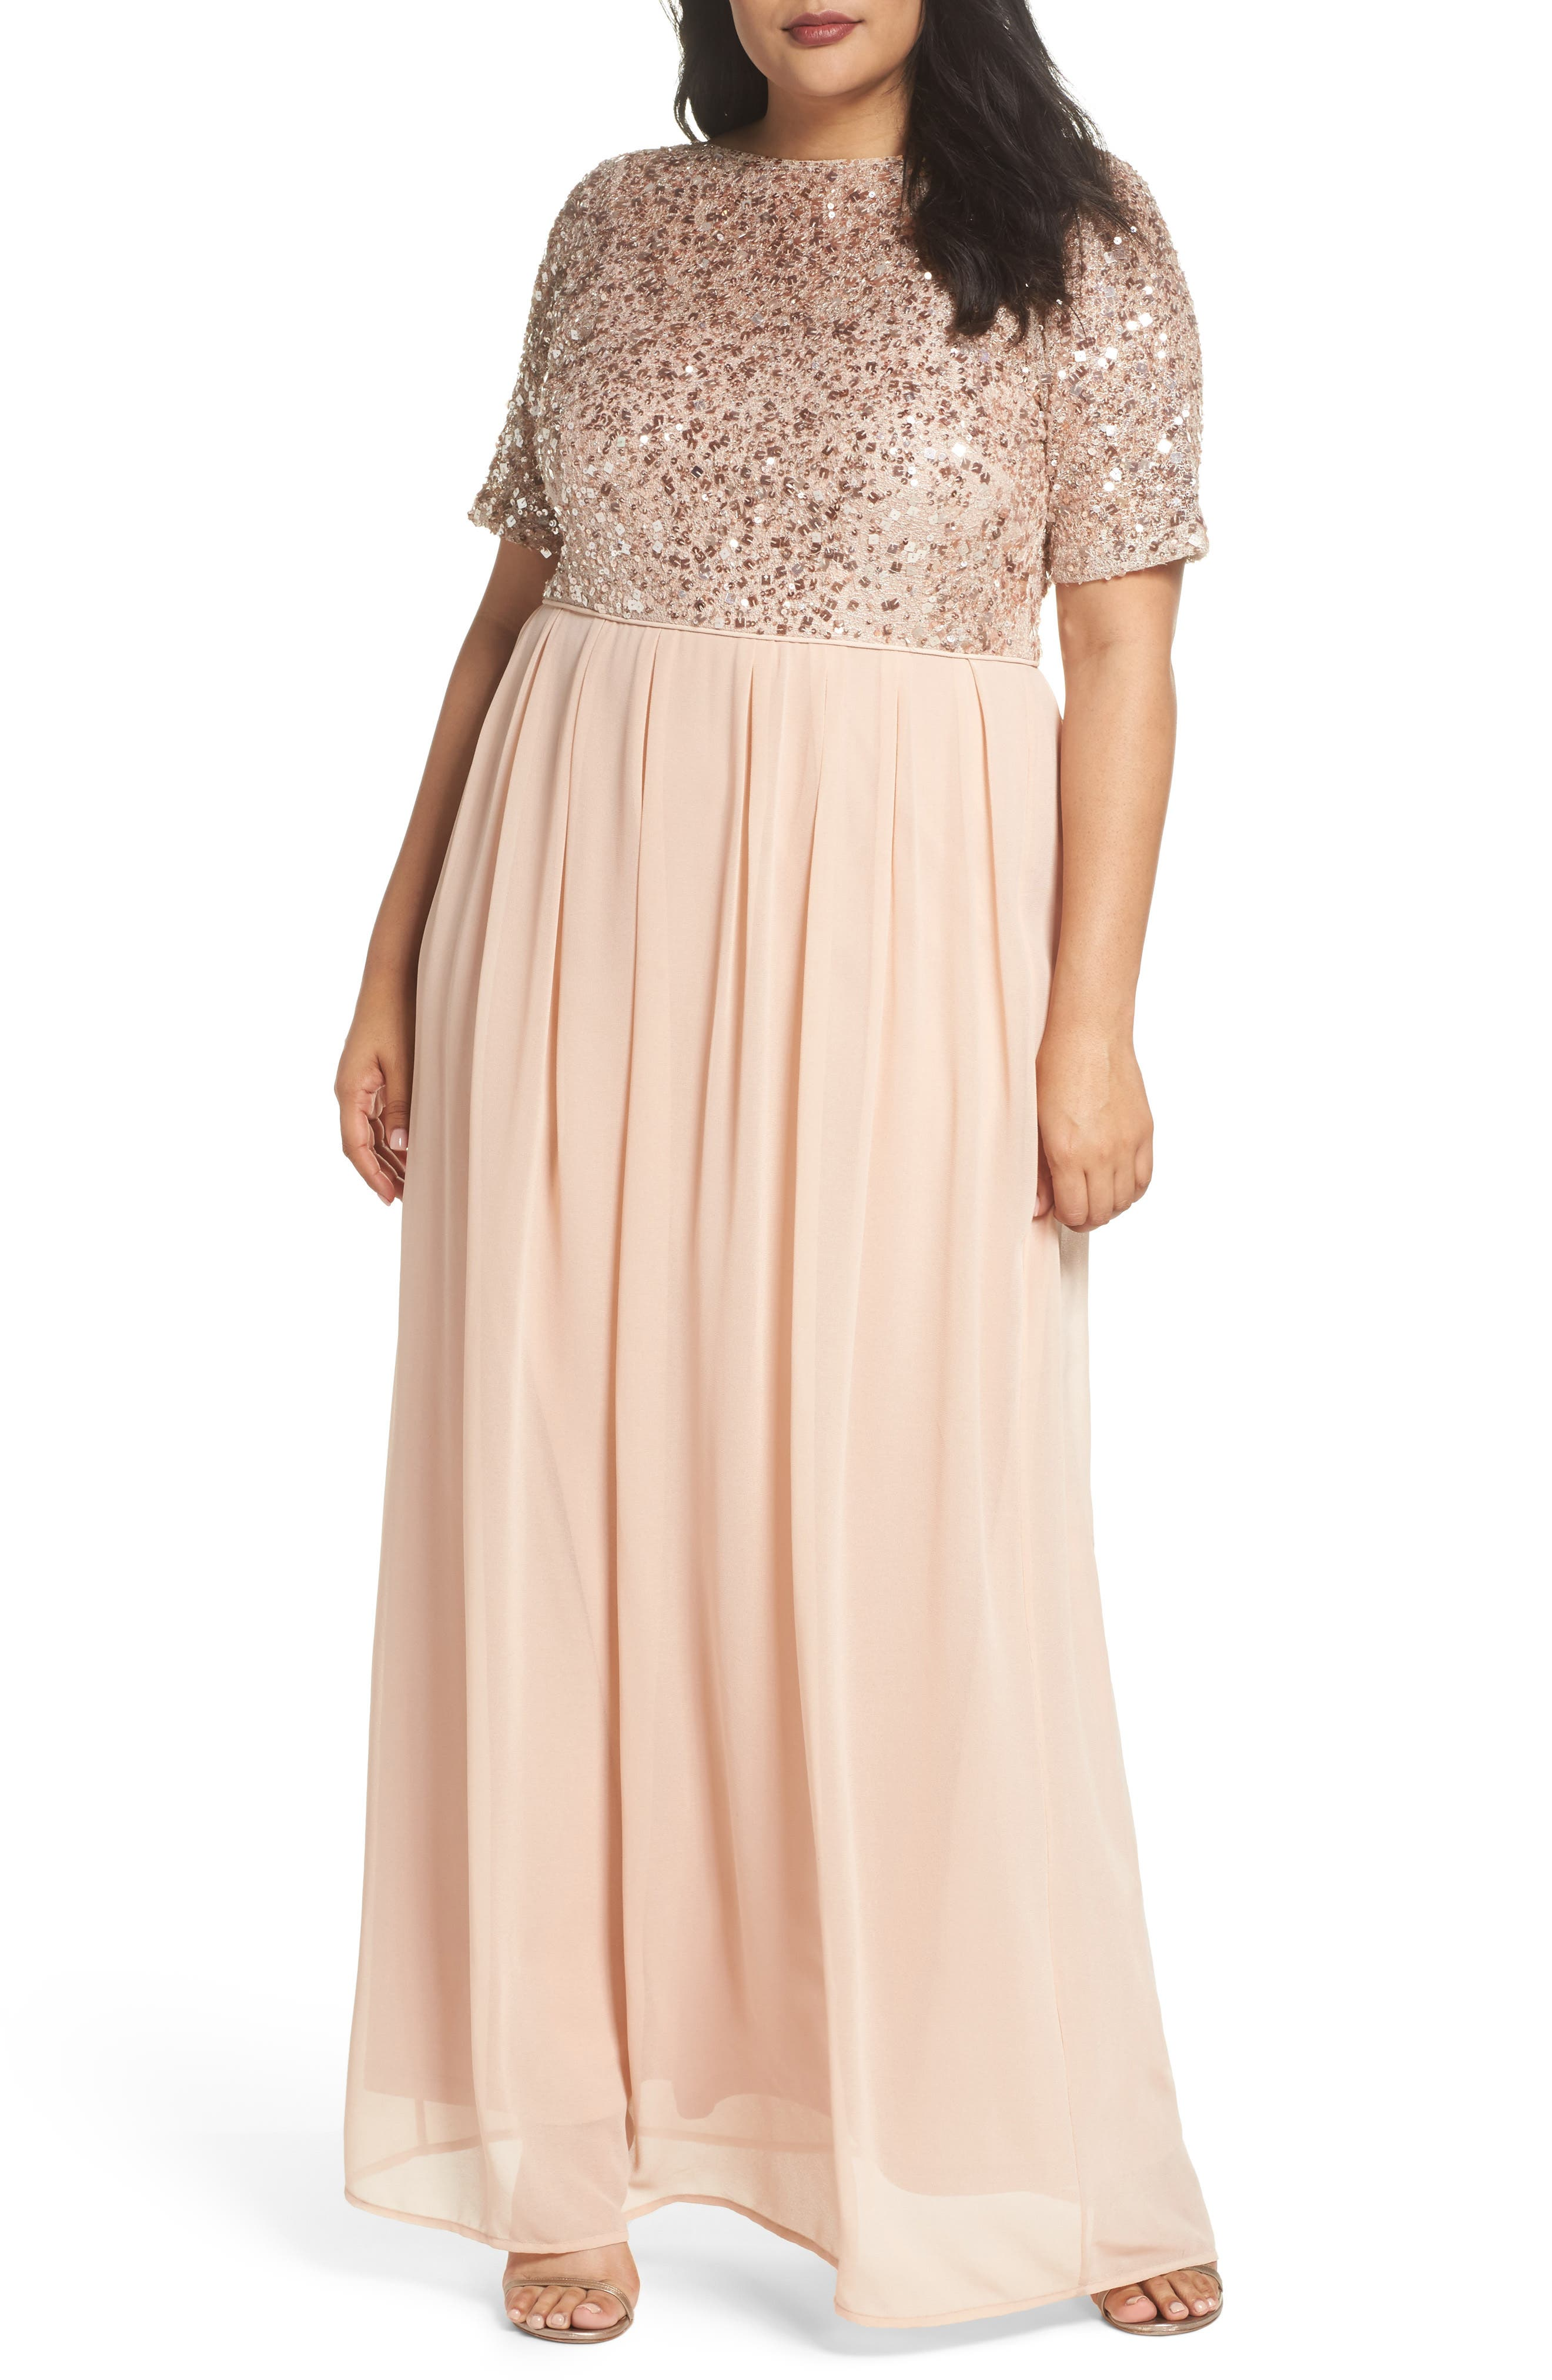 Main Image - Adrianna Papell Beaded Metallic Lace Gown (Plus Size)